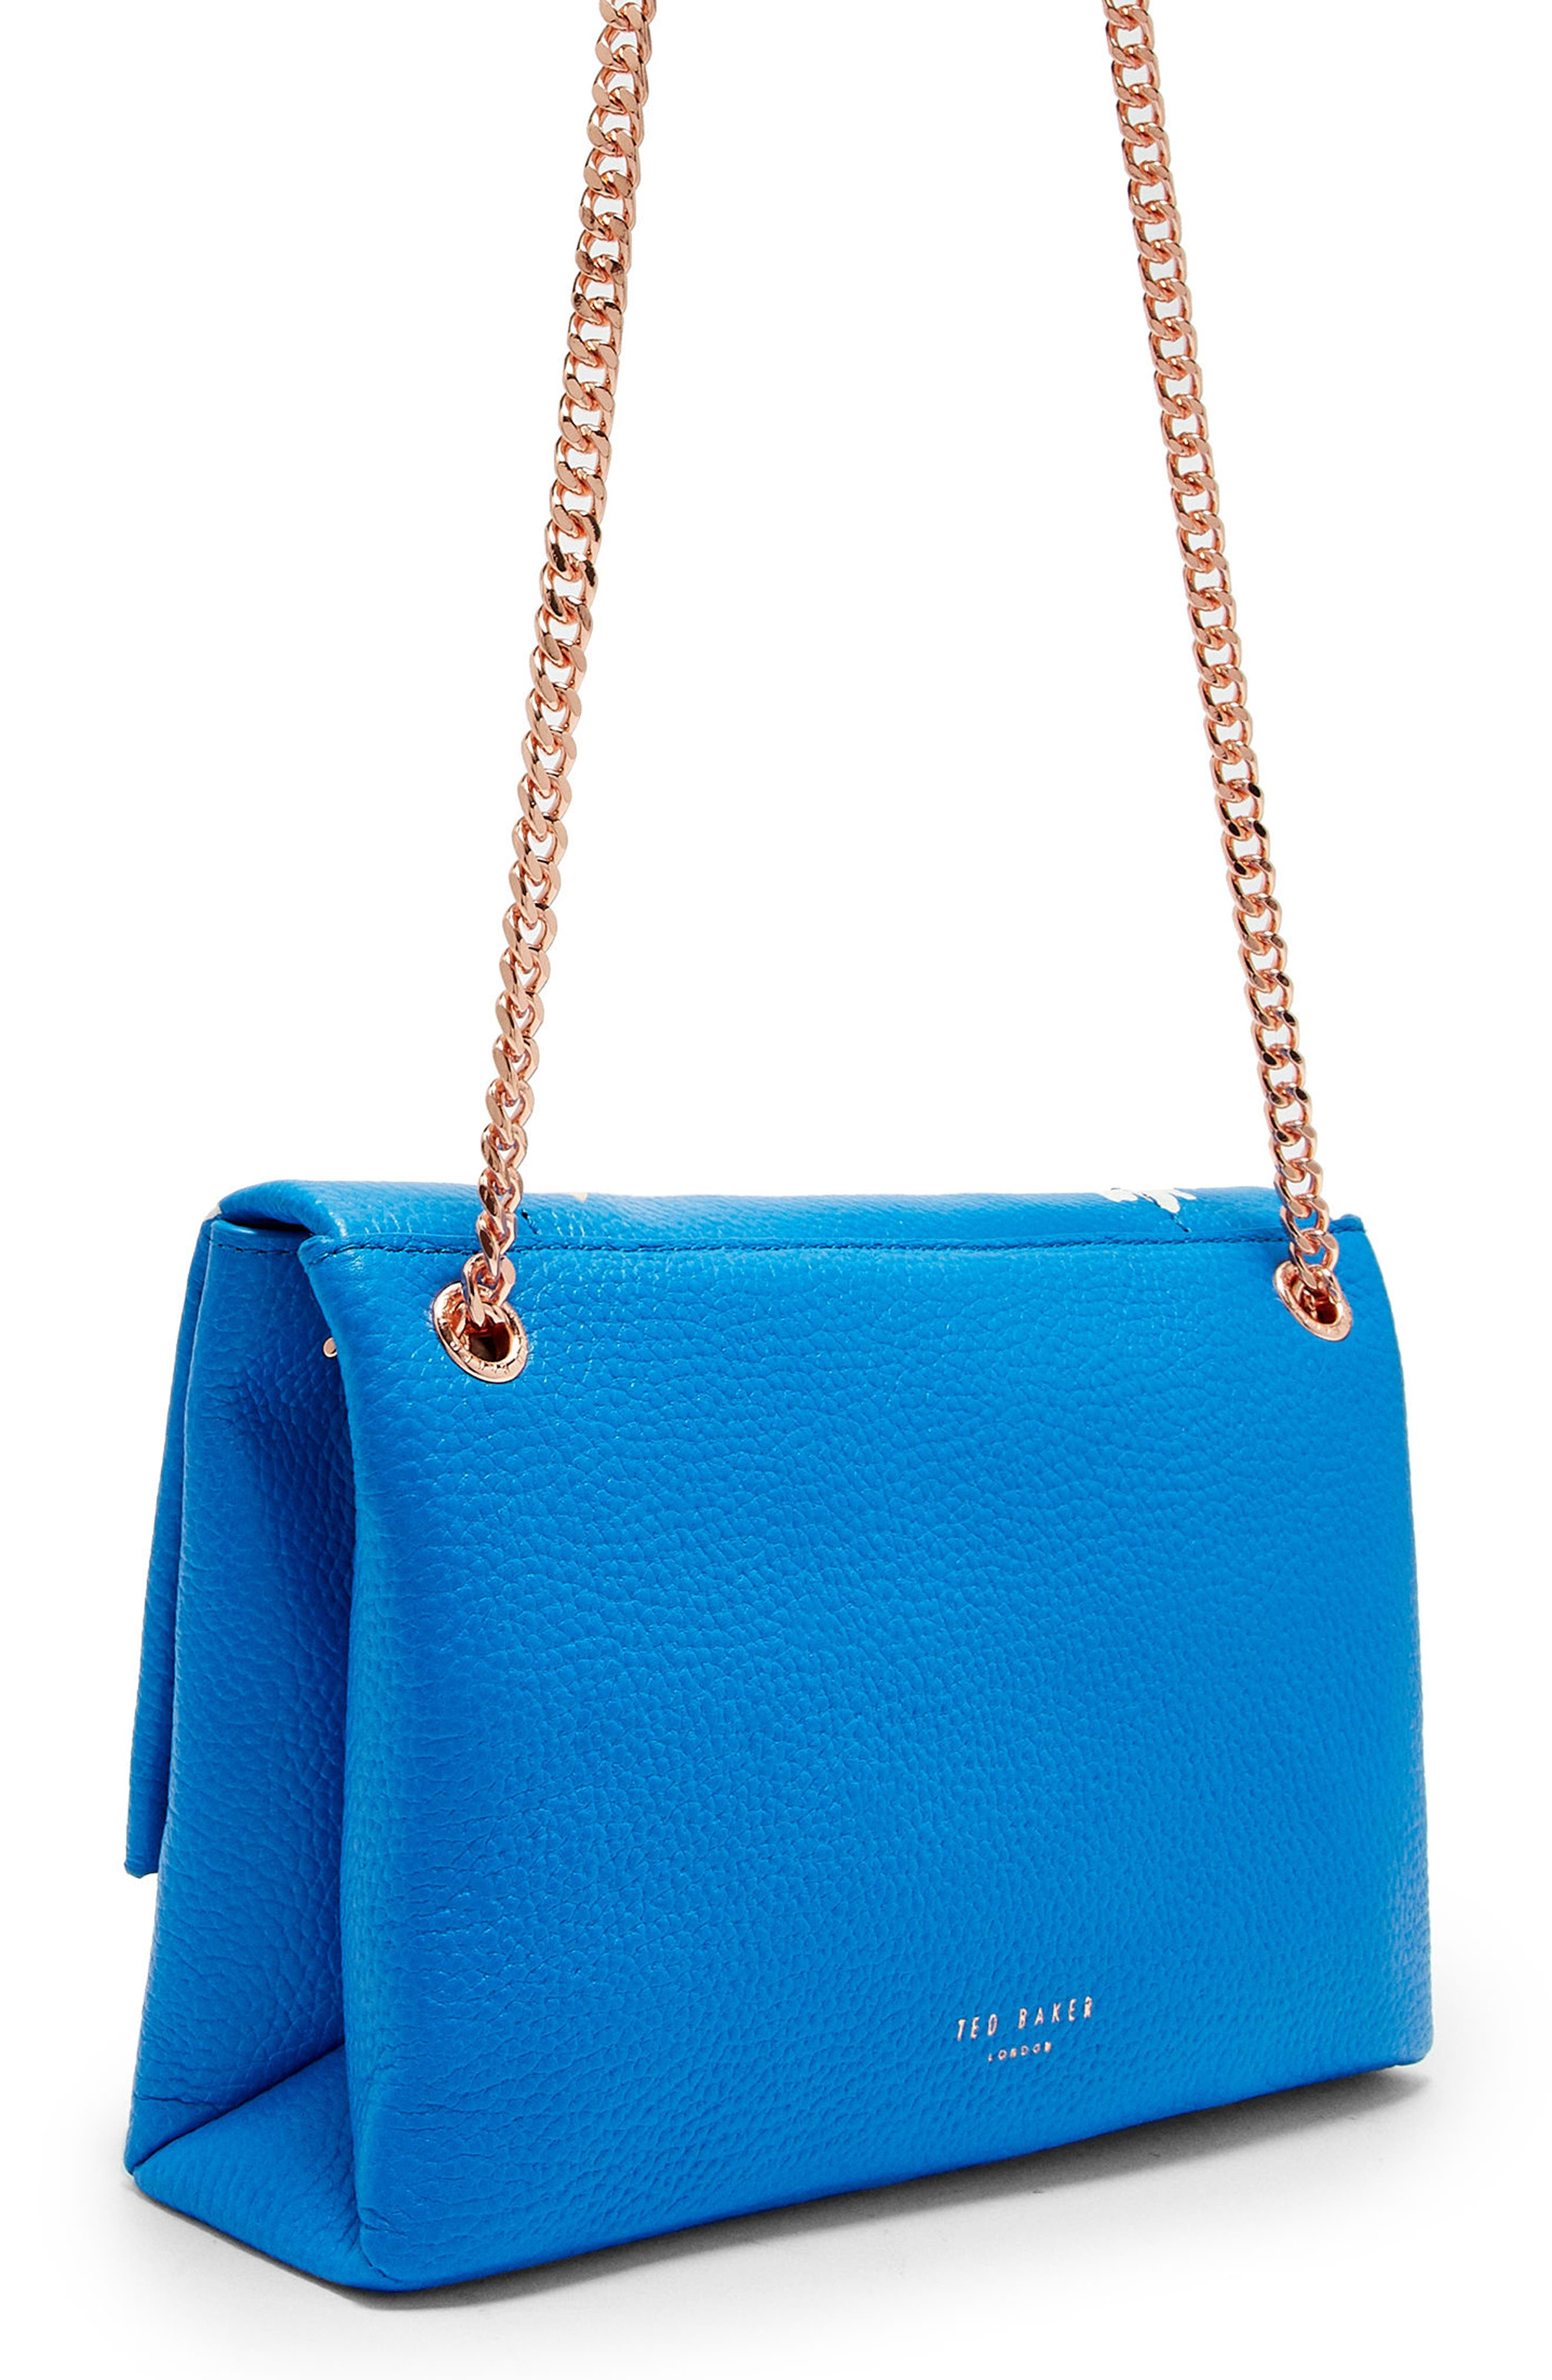 Haalle Harmony Leather Crossbody Bag,                             Alternate thumbnail 2, color,                             430